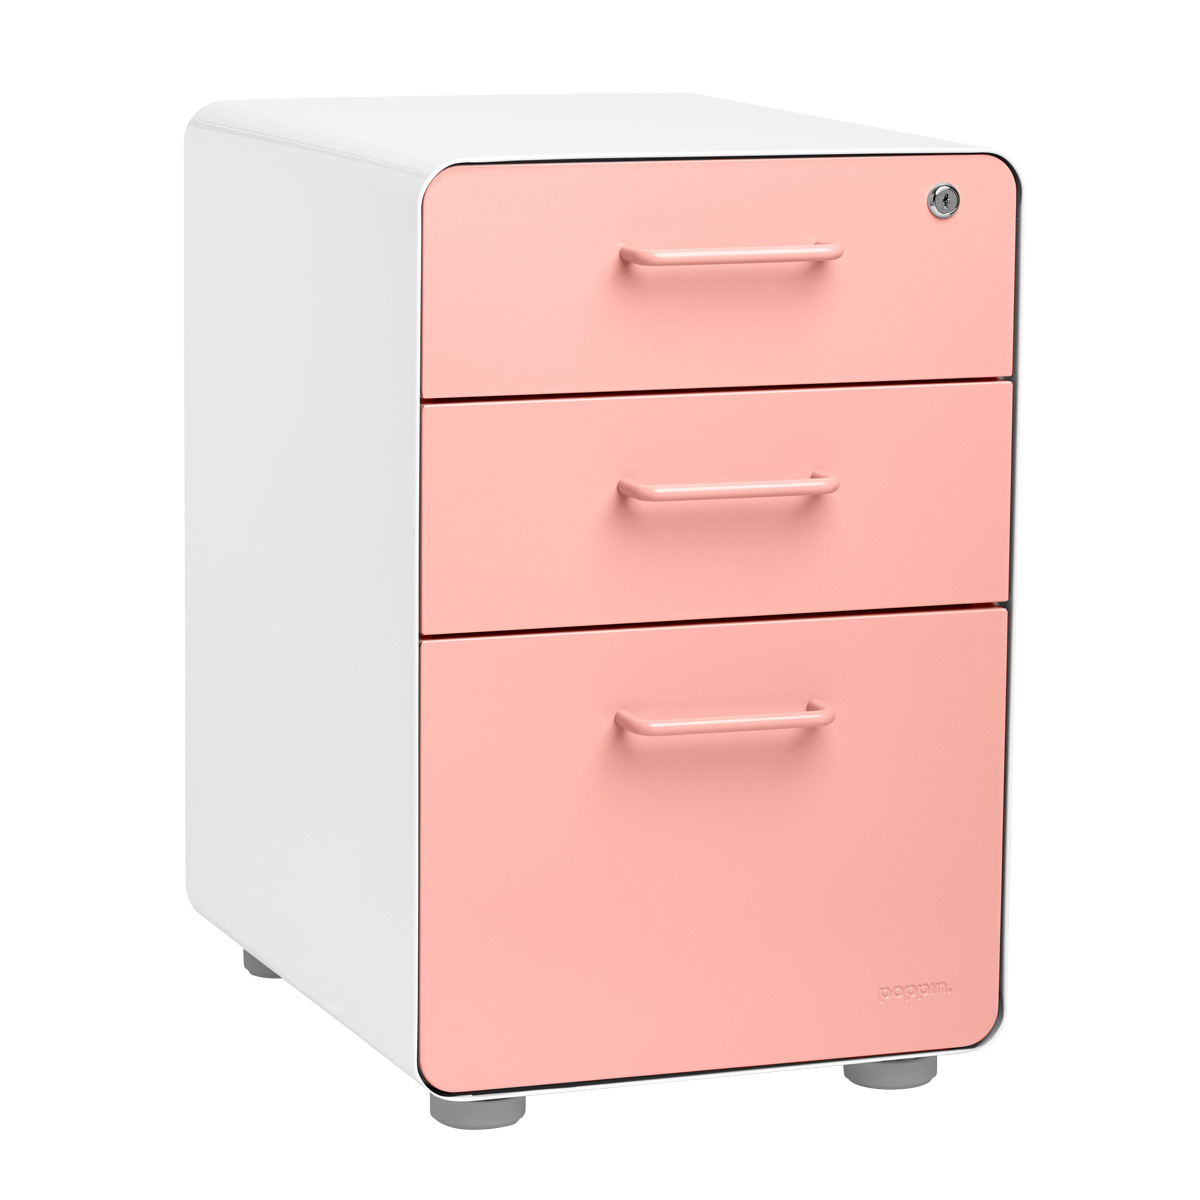 Charmant Poppin File Cabinet   White Poppin 3 Drawer Stow File Cabinet | The  Container Store